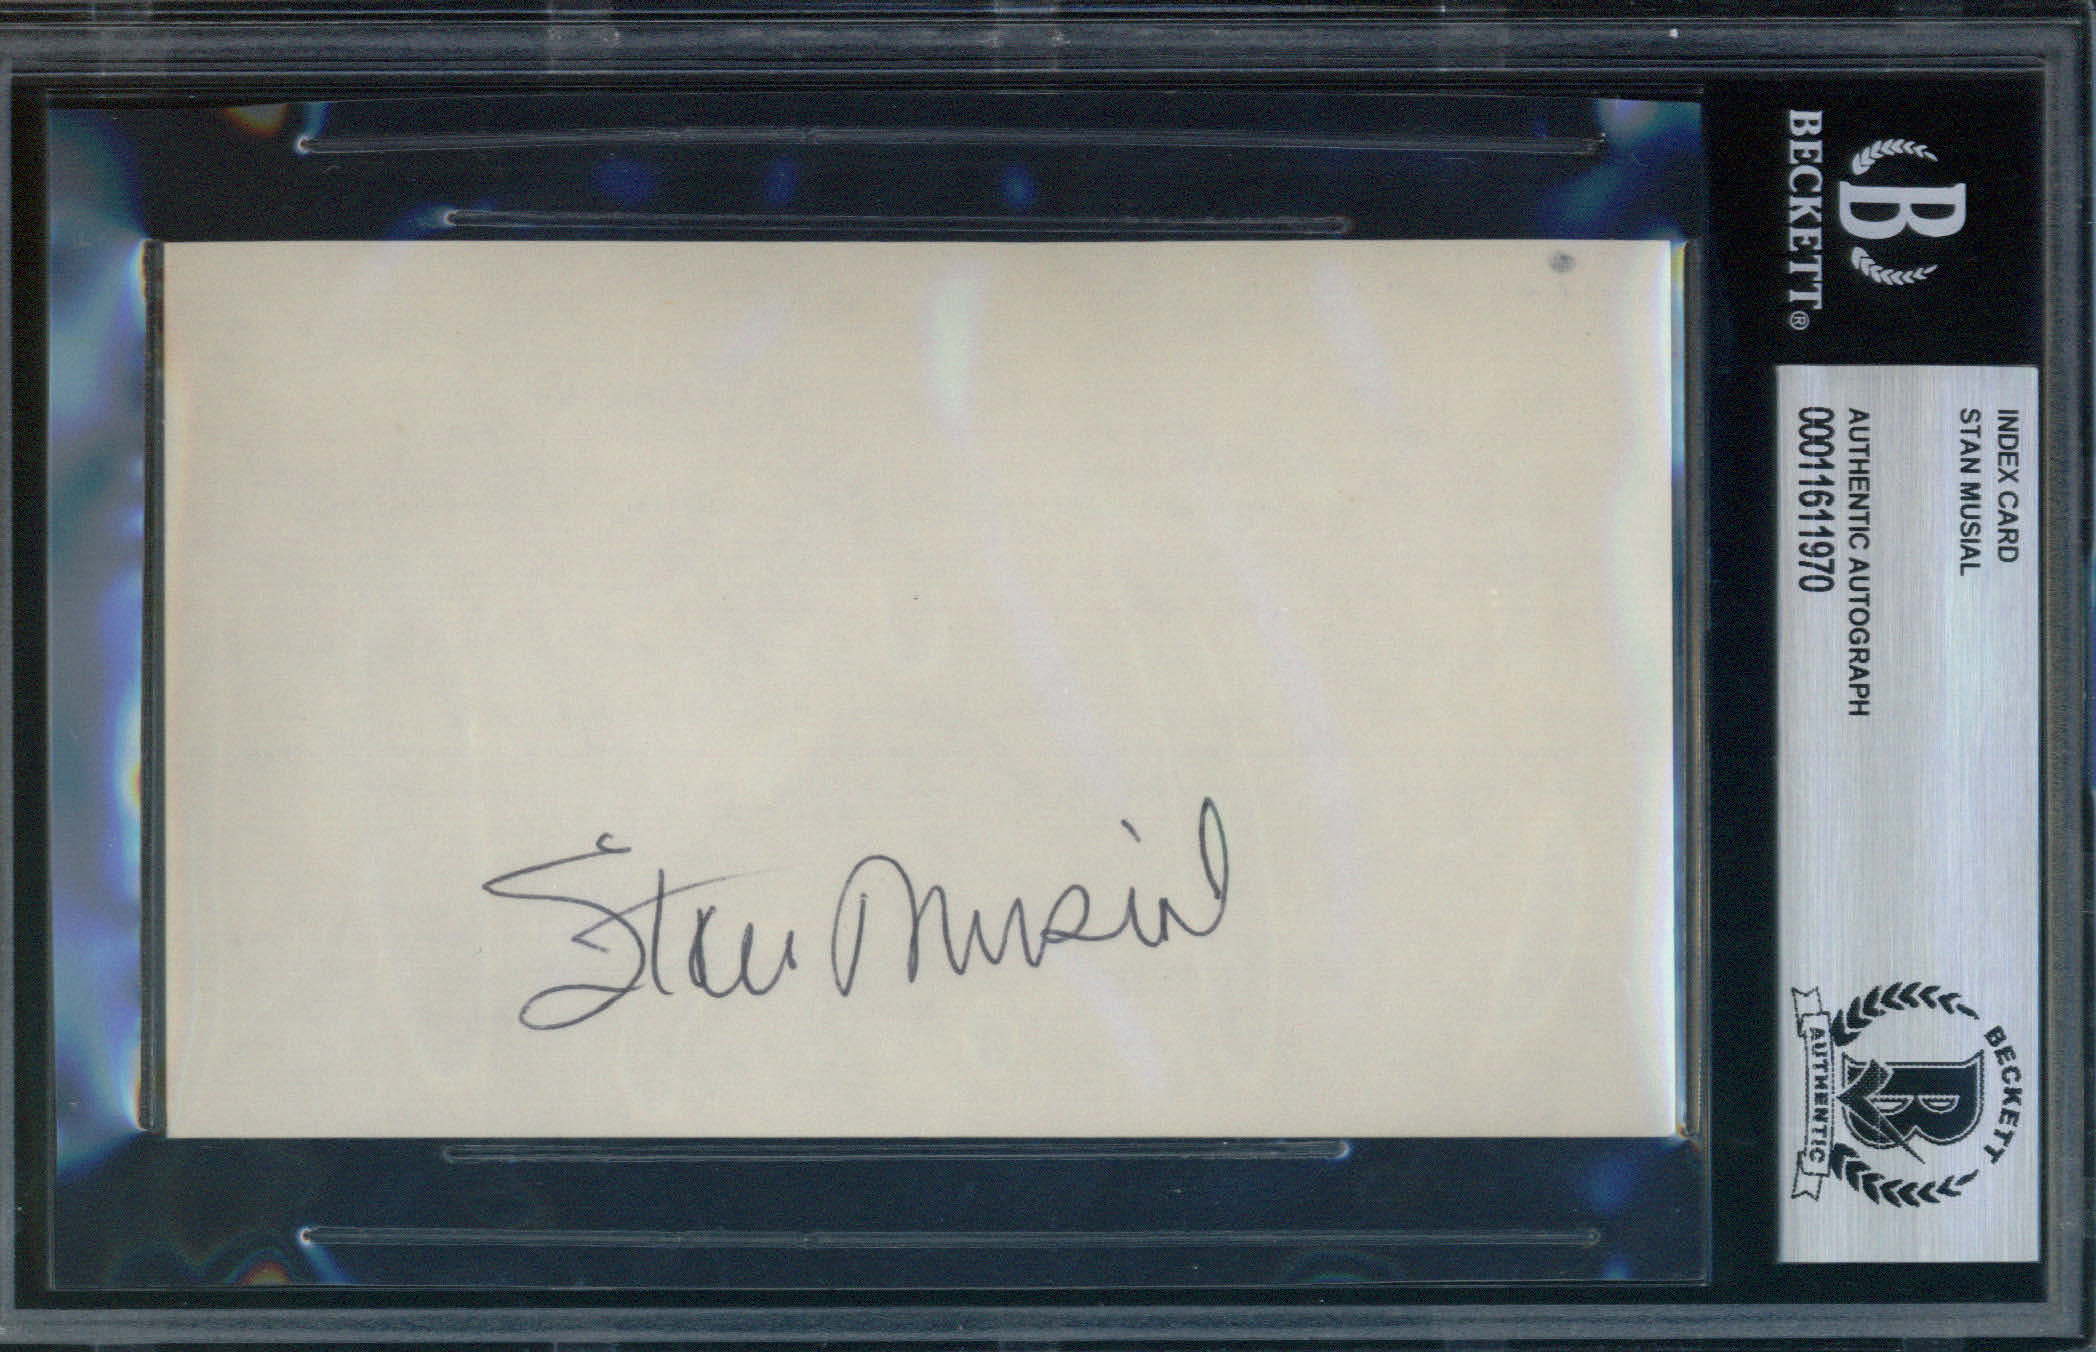 Stan Musial Autographed Index Card BAS Authenticated